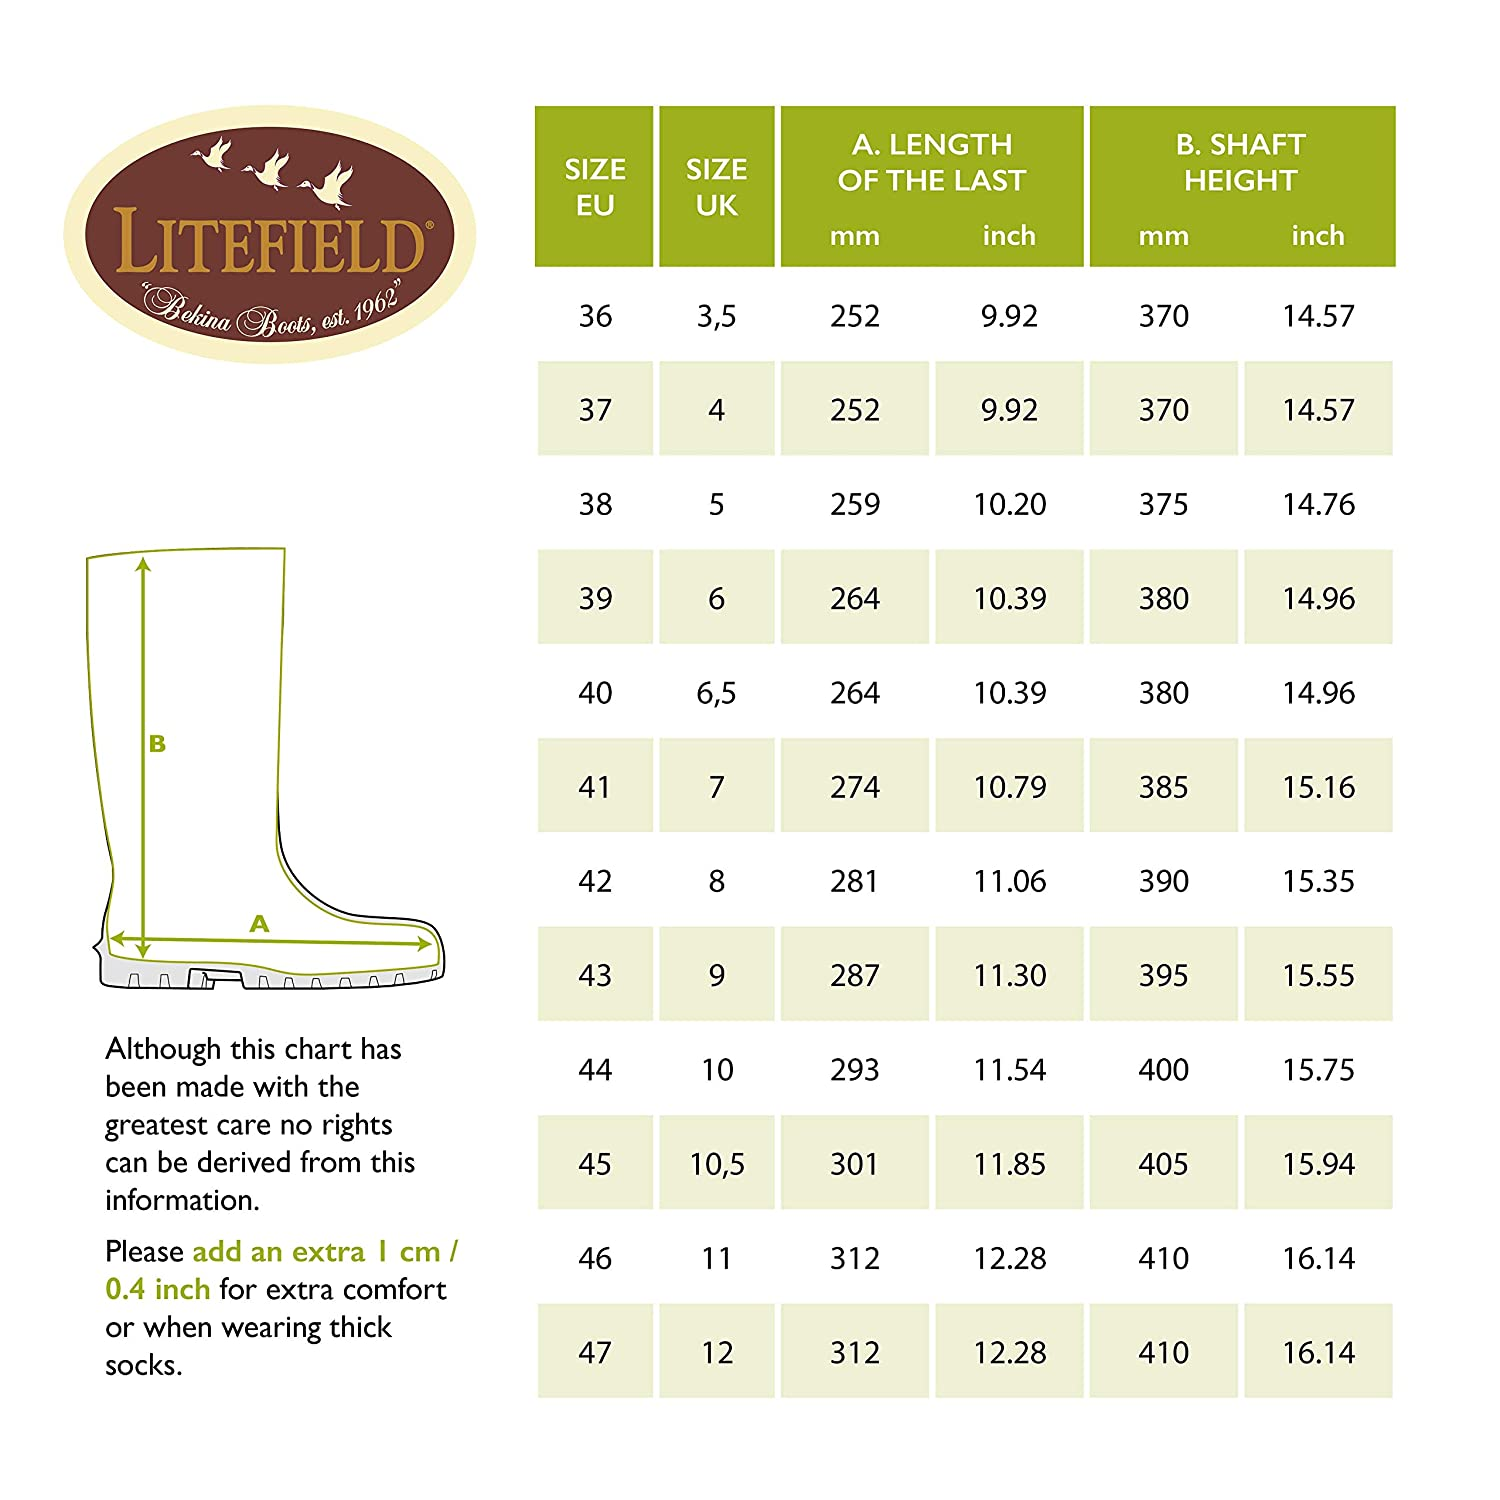 Feather-Light Outdoor Boots for Men and Women Without Steel Toecap and Steel Sole UK 10 Brown Non-Slip Moisture Absorbent Insoles Insulating up to 20 Degrees